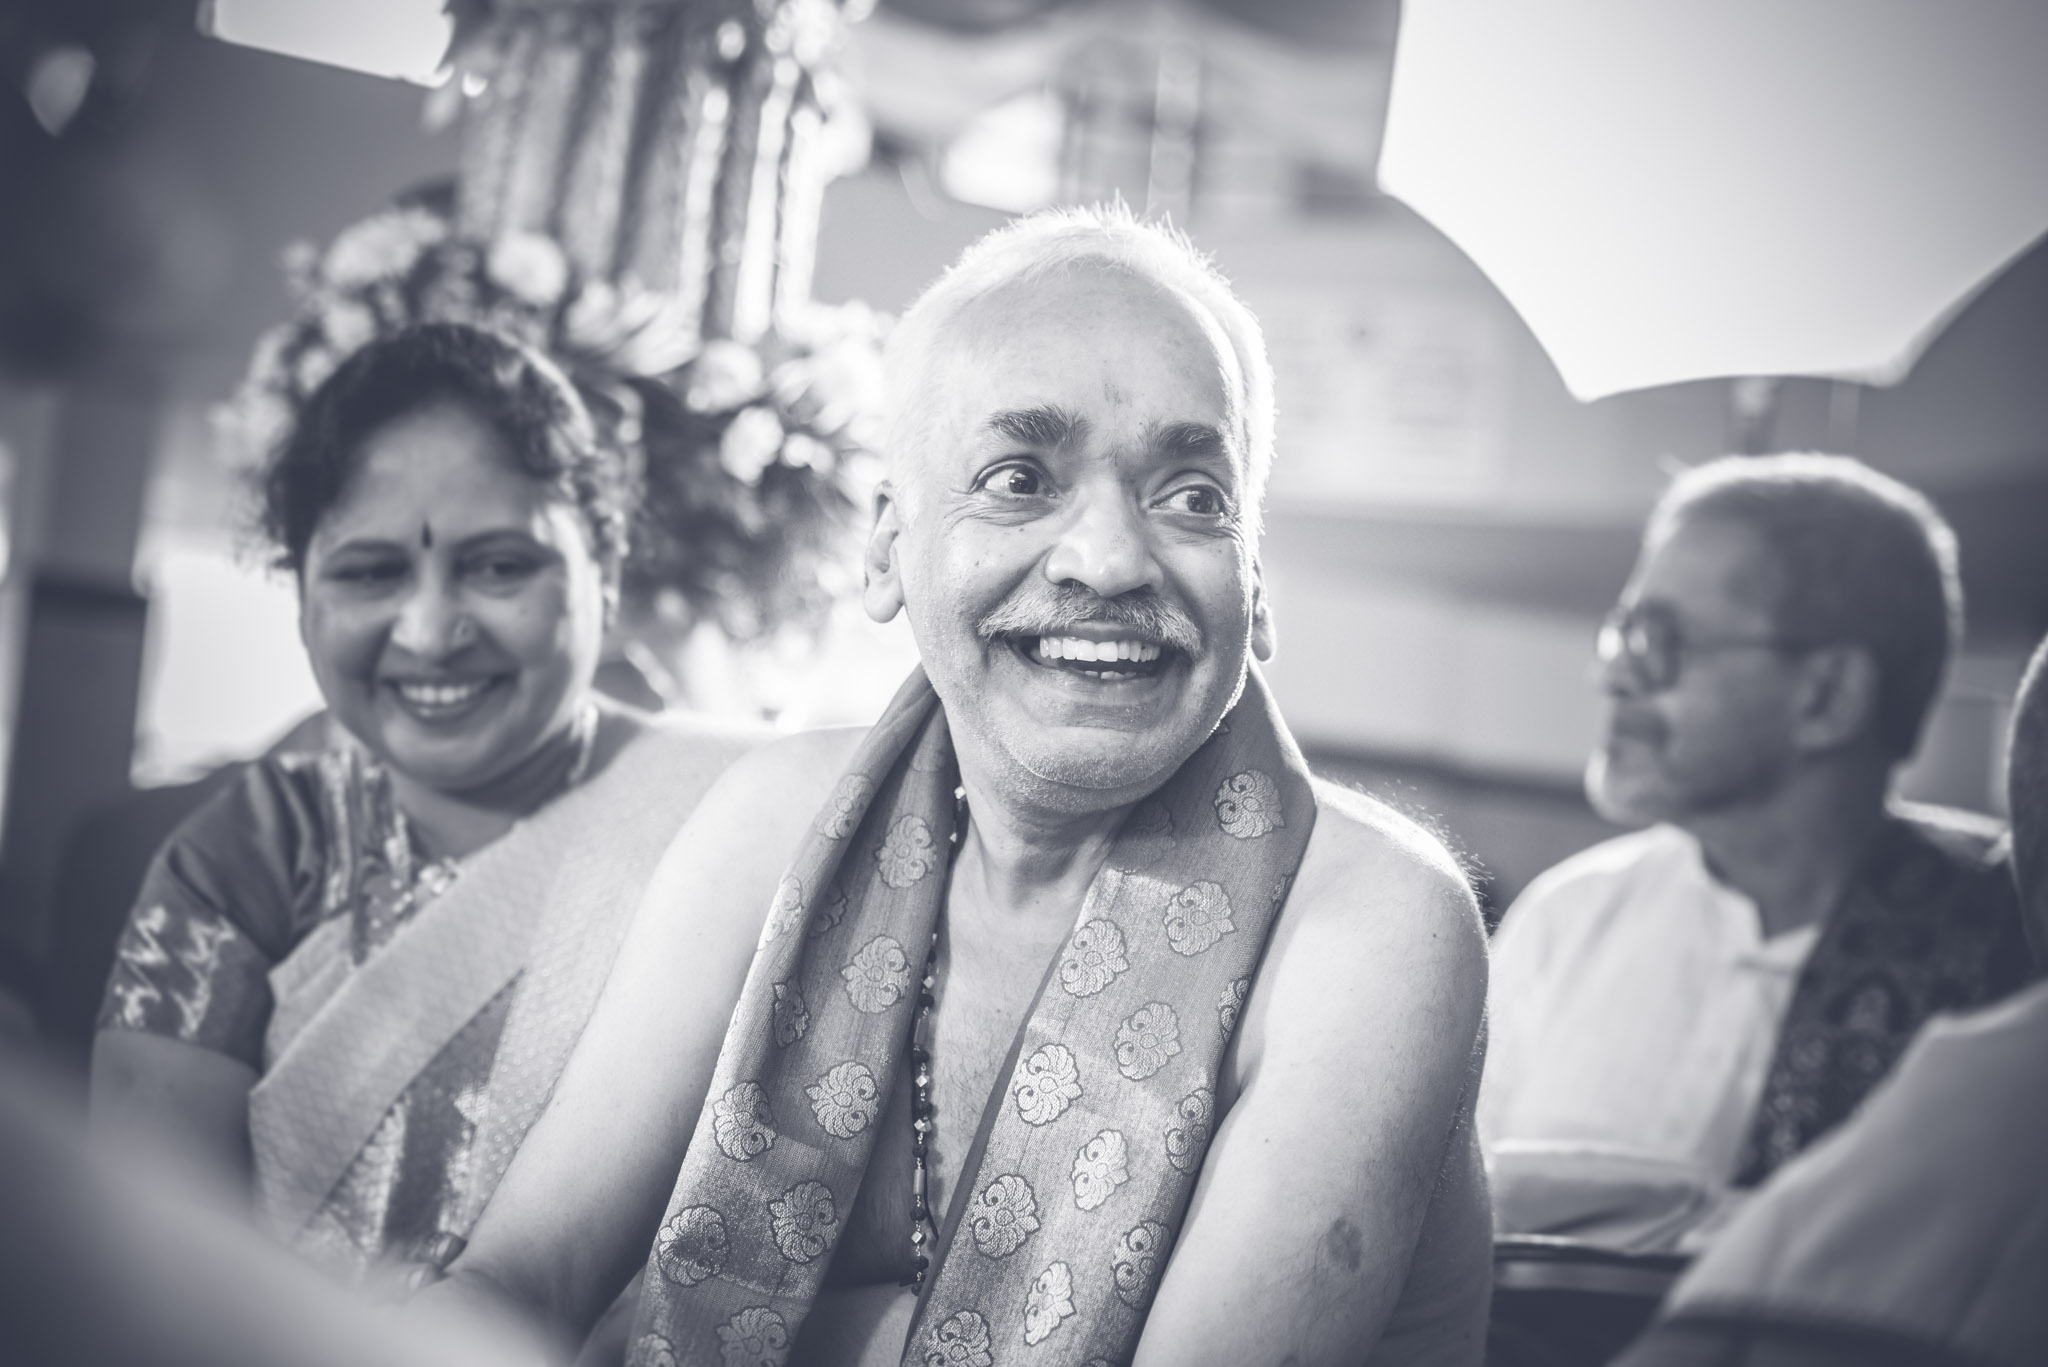 WhatKnot-Candid-Wedding-Photography-Mumbai-Bangalore-153